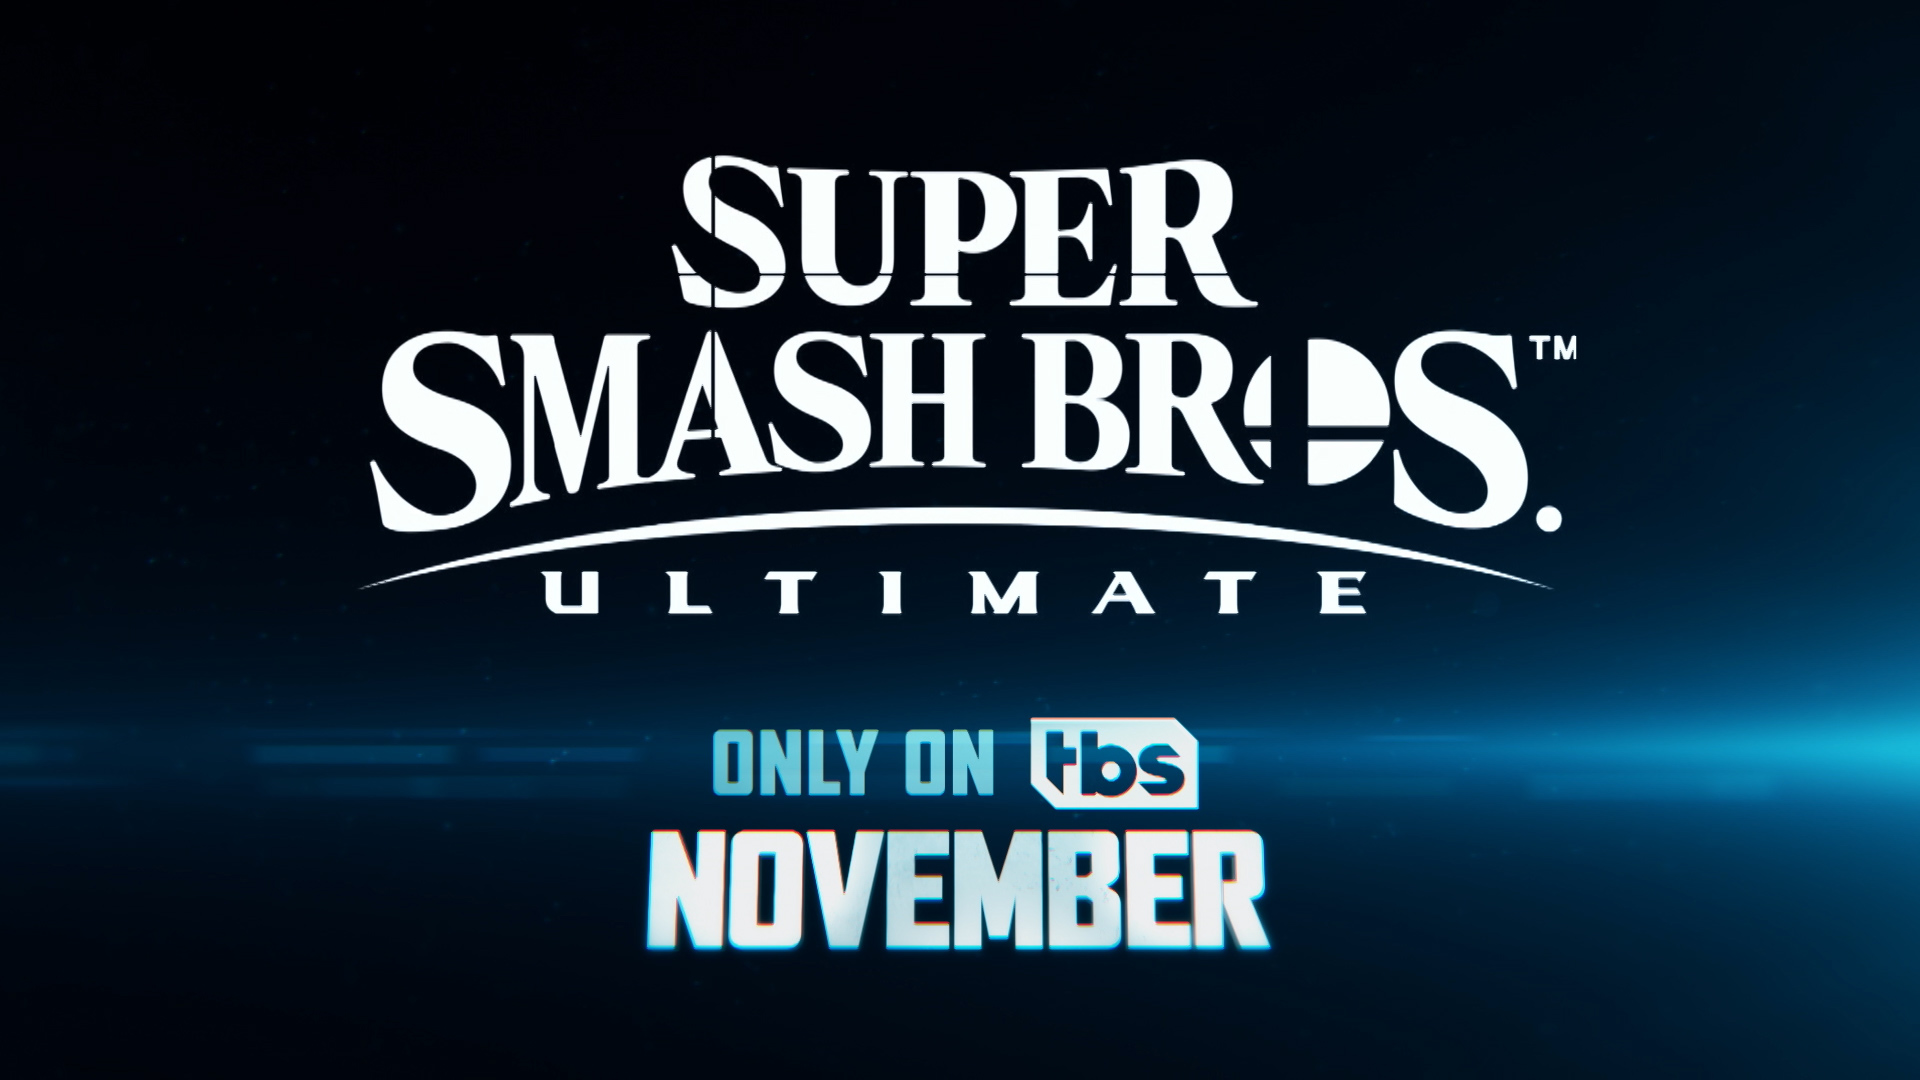 Super Smash Bros. Ultimate Invitational 2018 presented by ELEAGUE